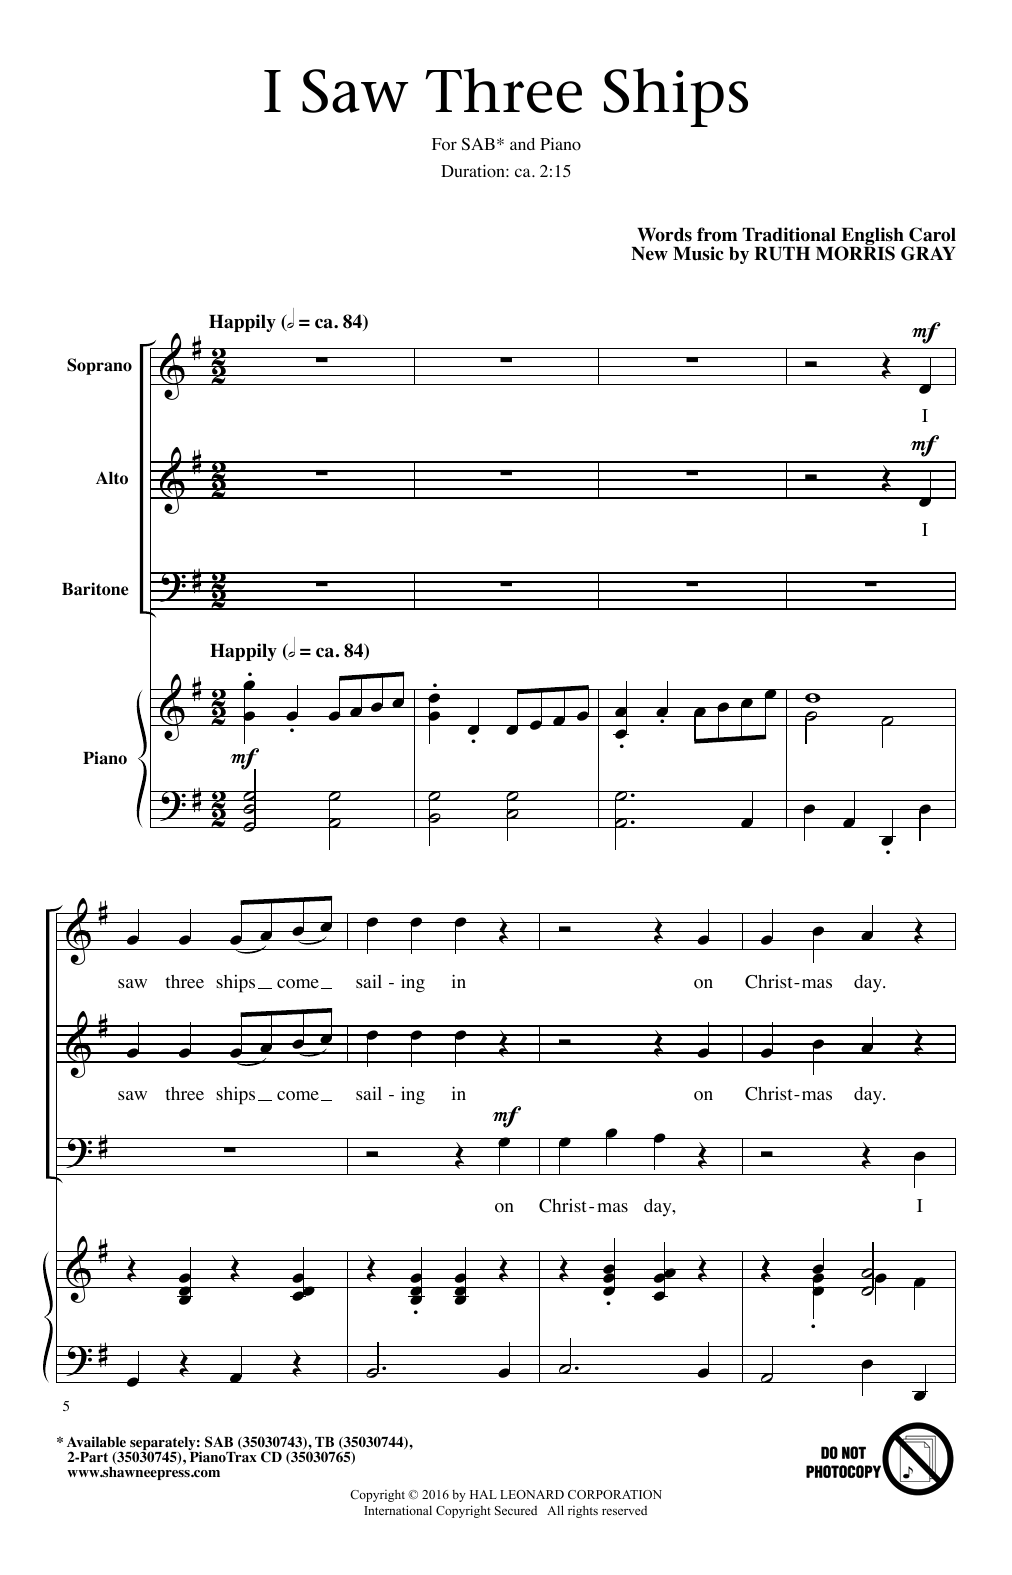 I Saw Three Ships Sheet Music